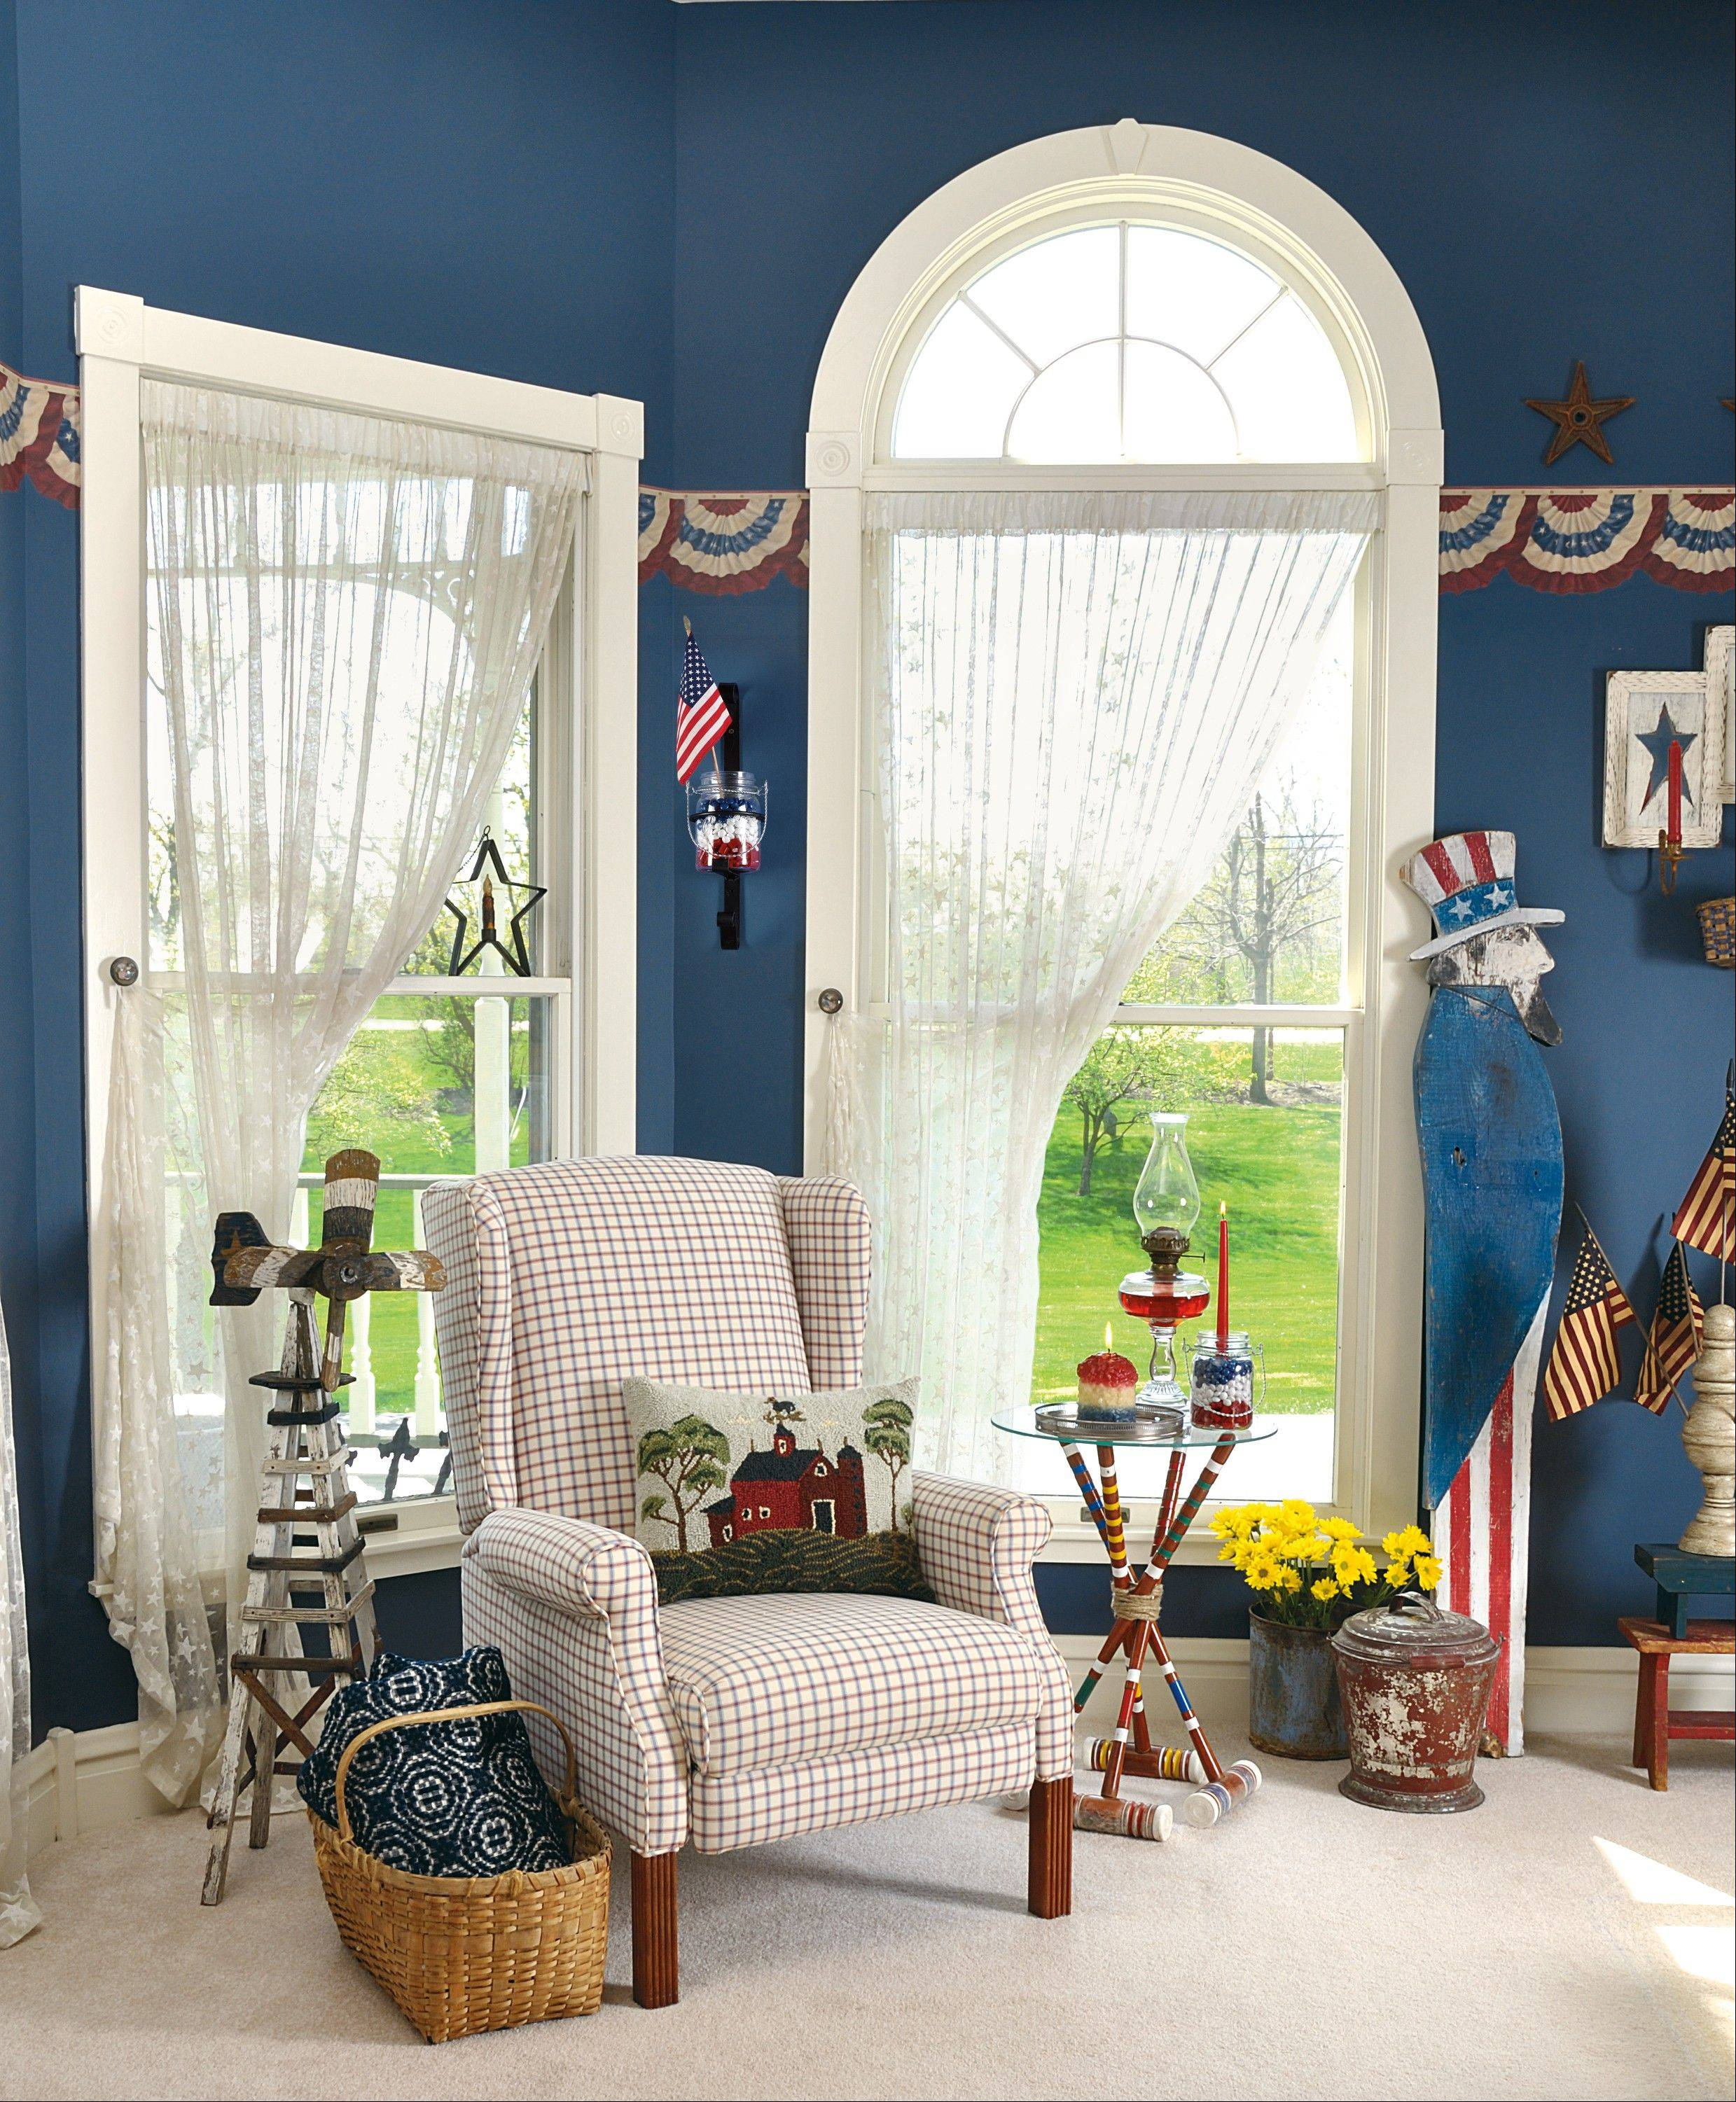 GAME CHANGER: Look for tips 3-6 to learn how Country Sampler stylists punched up the look in this room.